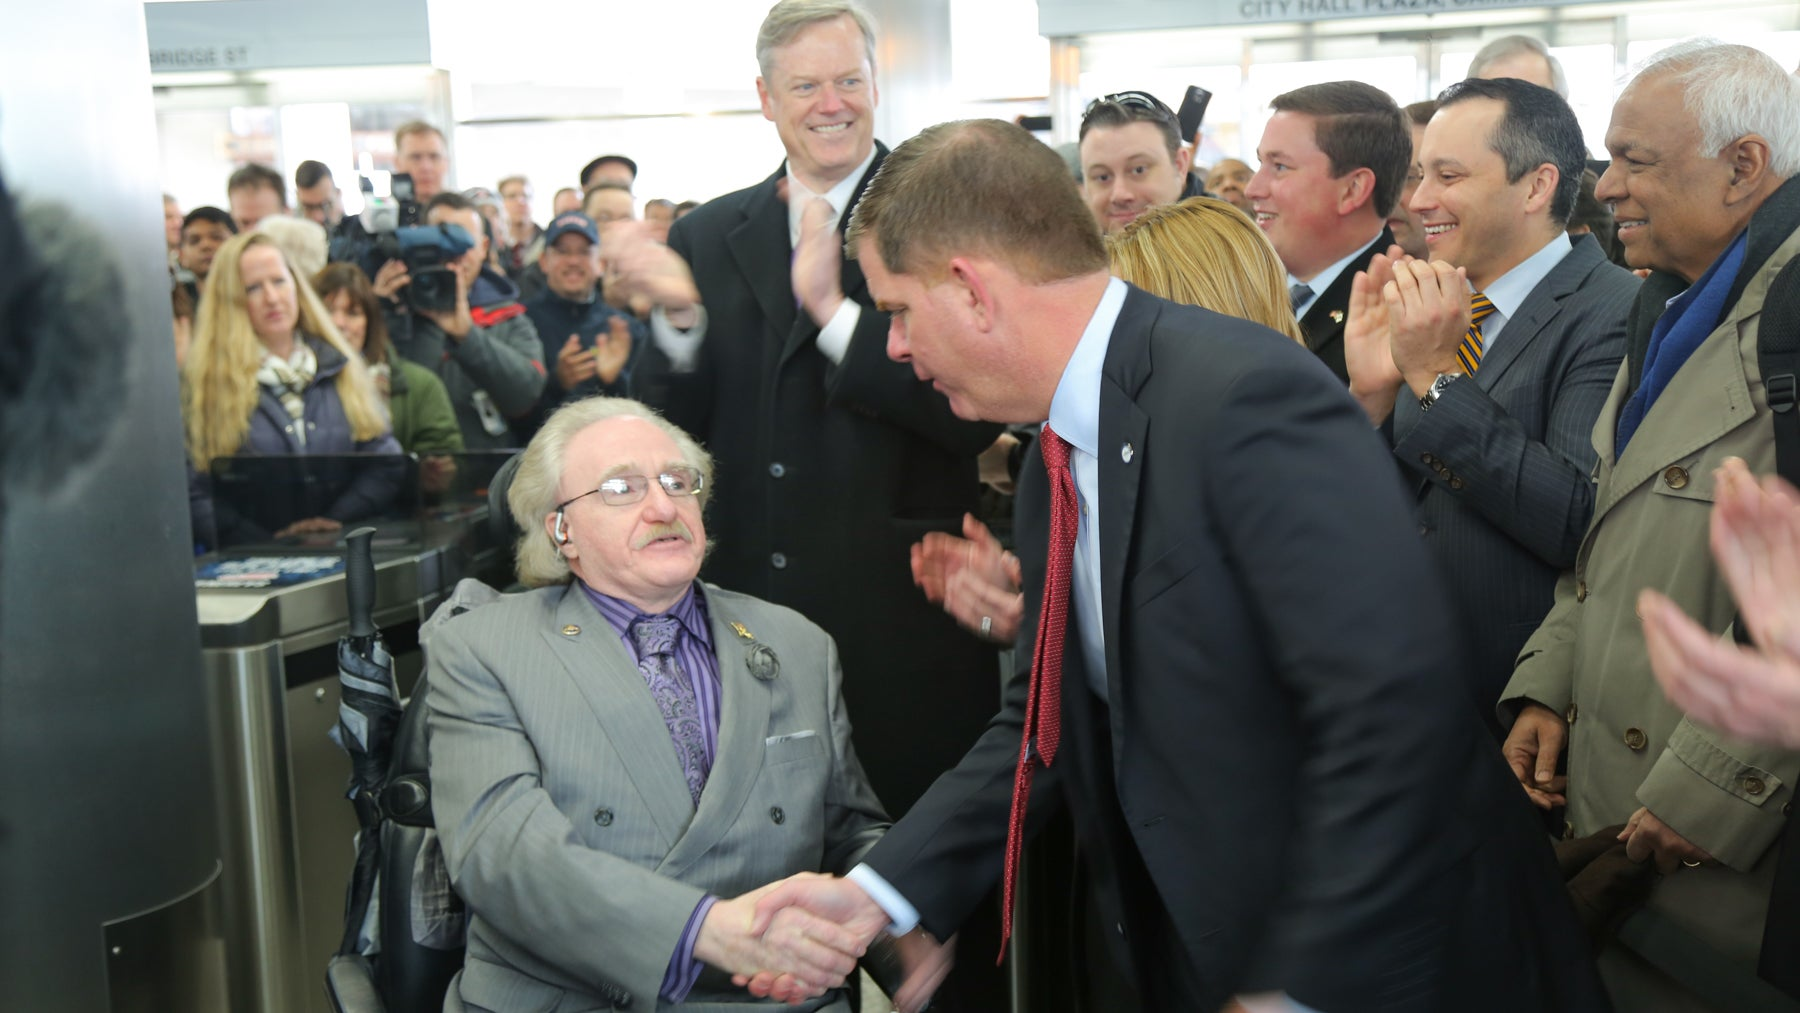 Jim White, chairman of the Access Advisory Committee to the MBTA, shakes hands with Boston Mayor Marty Walsh at the reopening of the newly accessible Government Center station. Gov. Charlie Baker was also present.